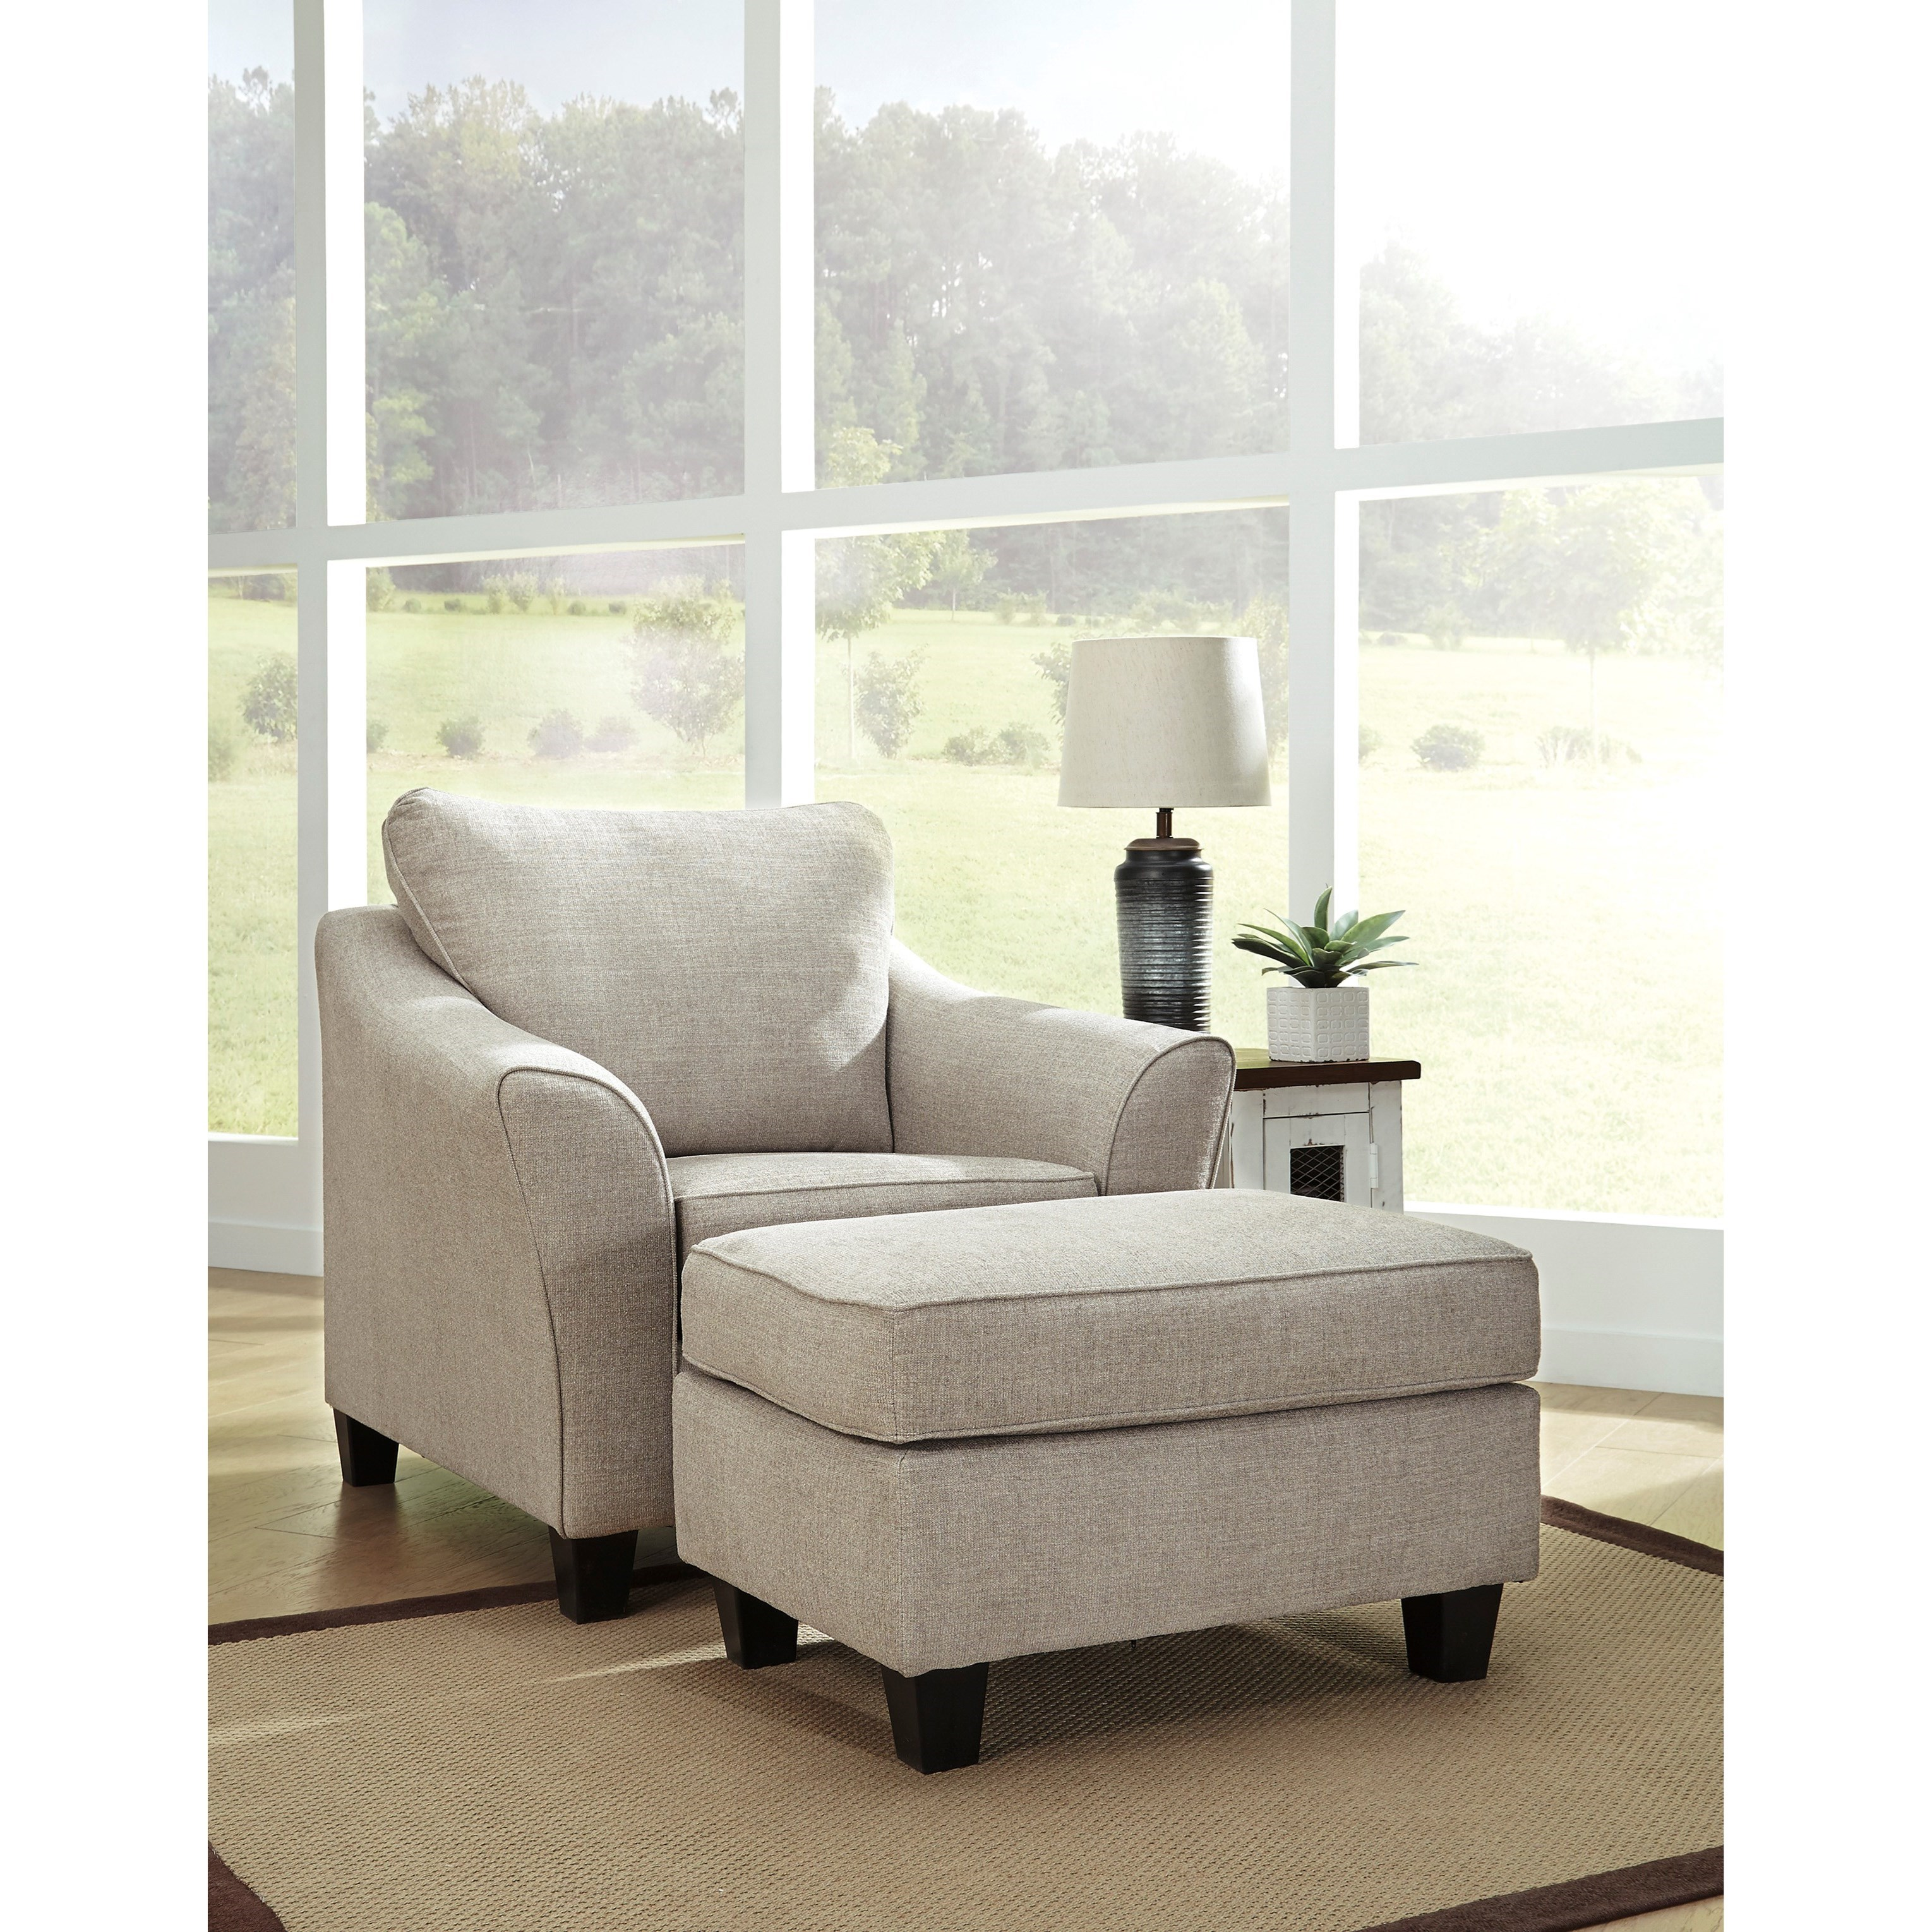 Abney Chair and Ottoman by Benchcraft at Catalog Outlet